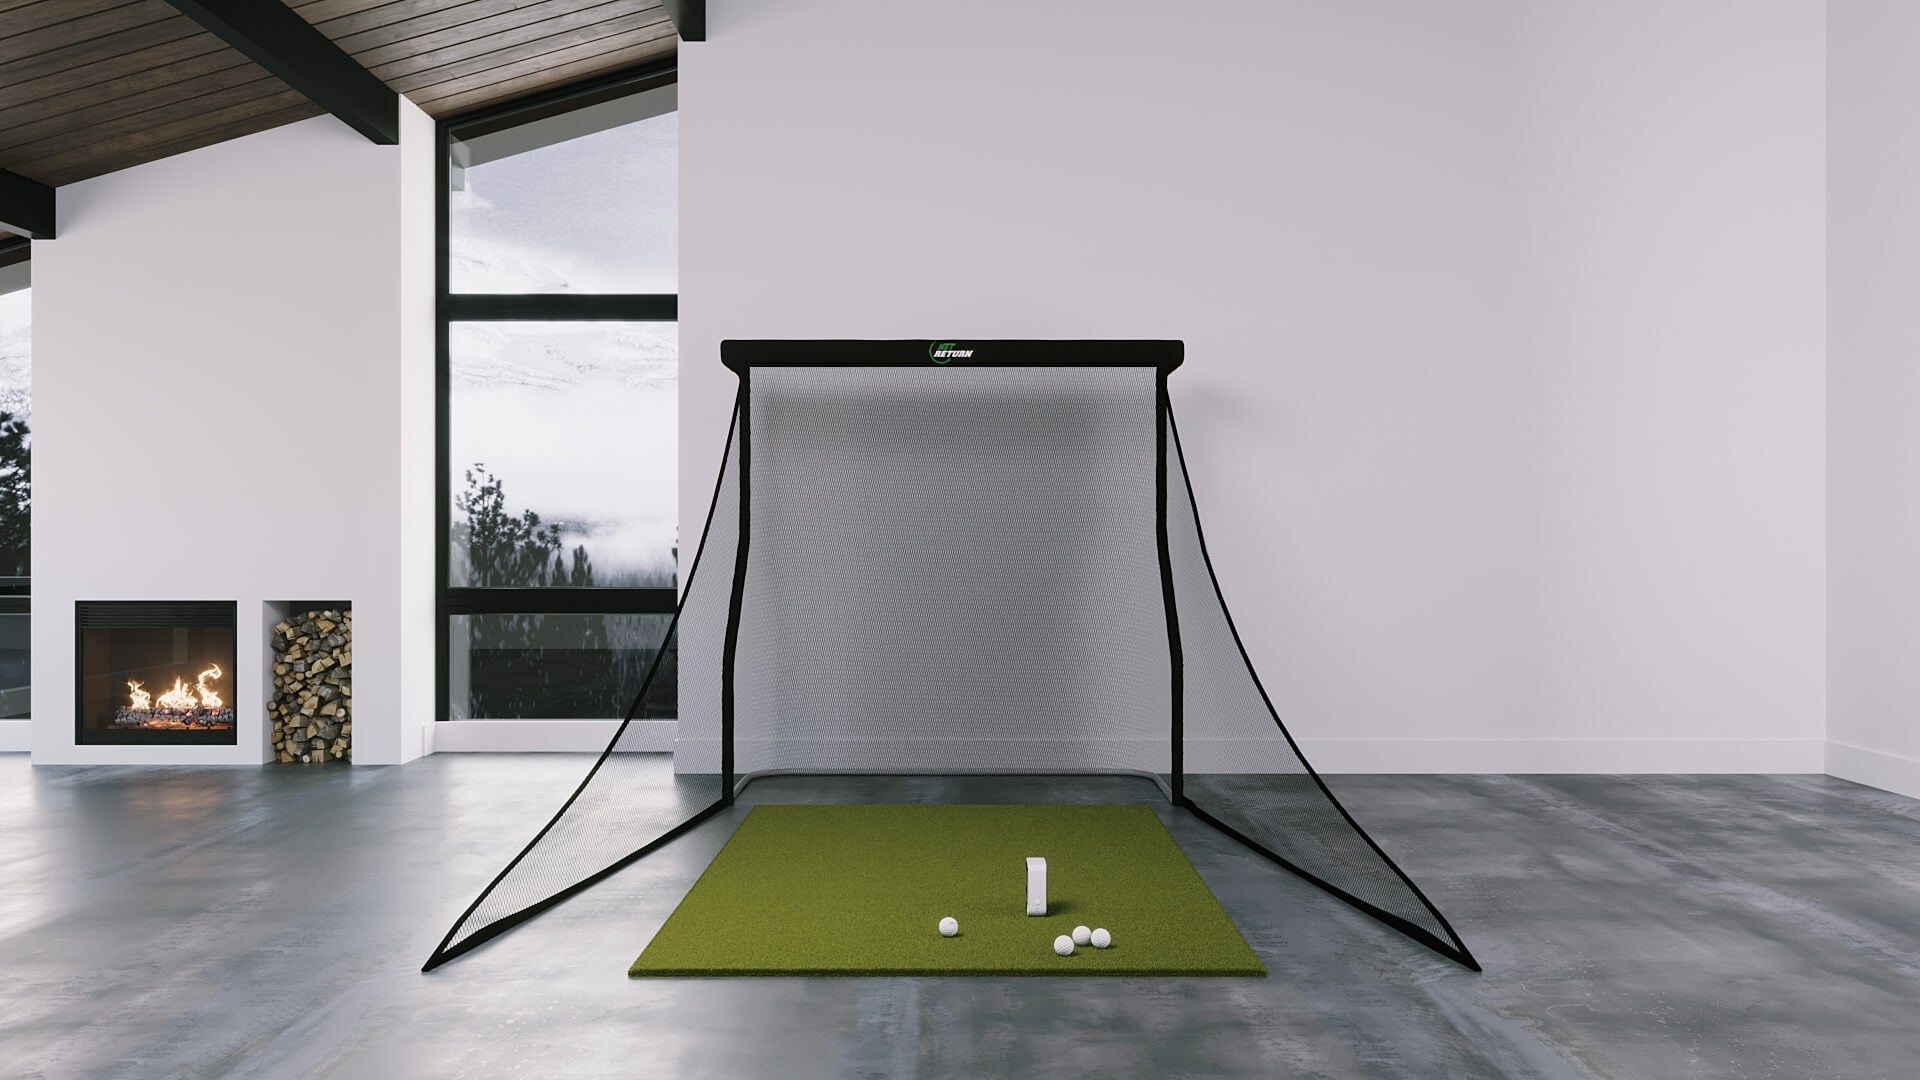 skytrak training golf simulator package